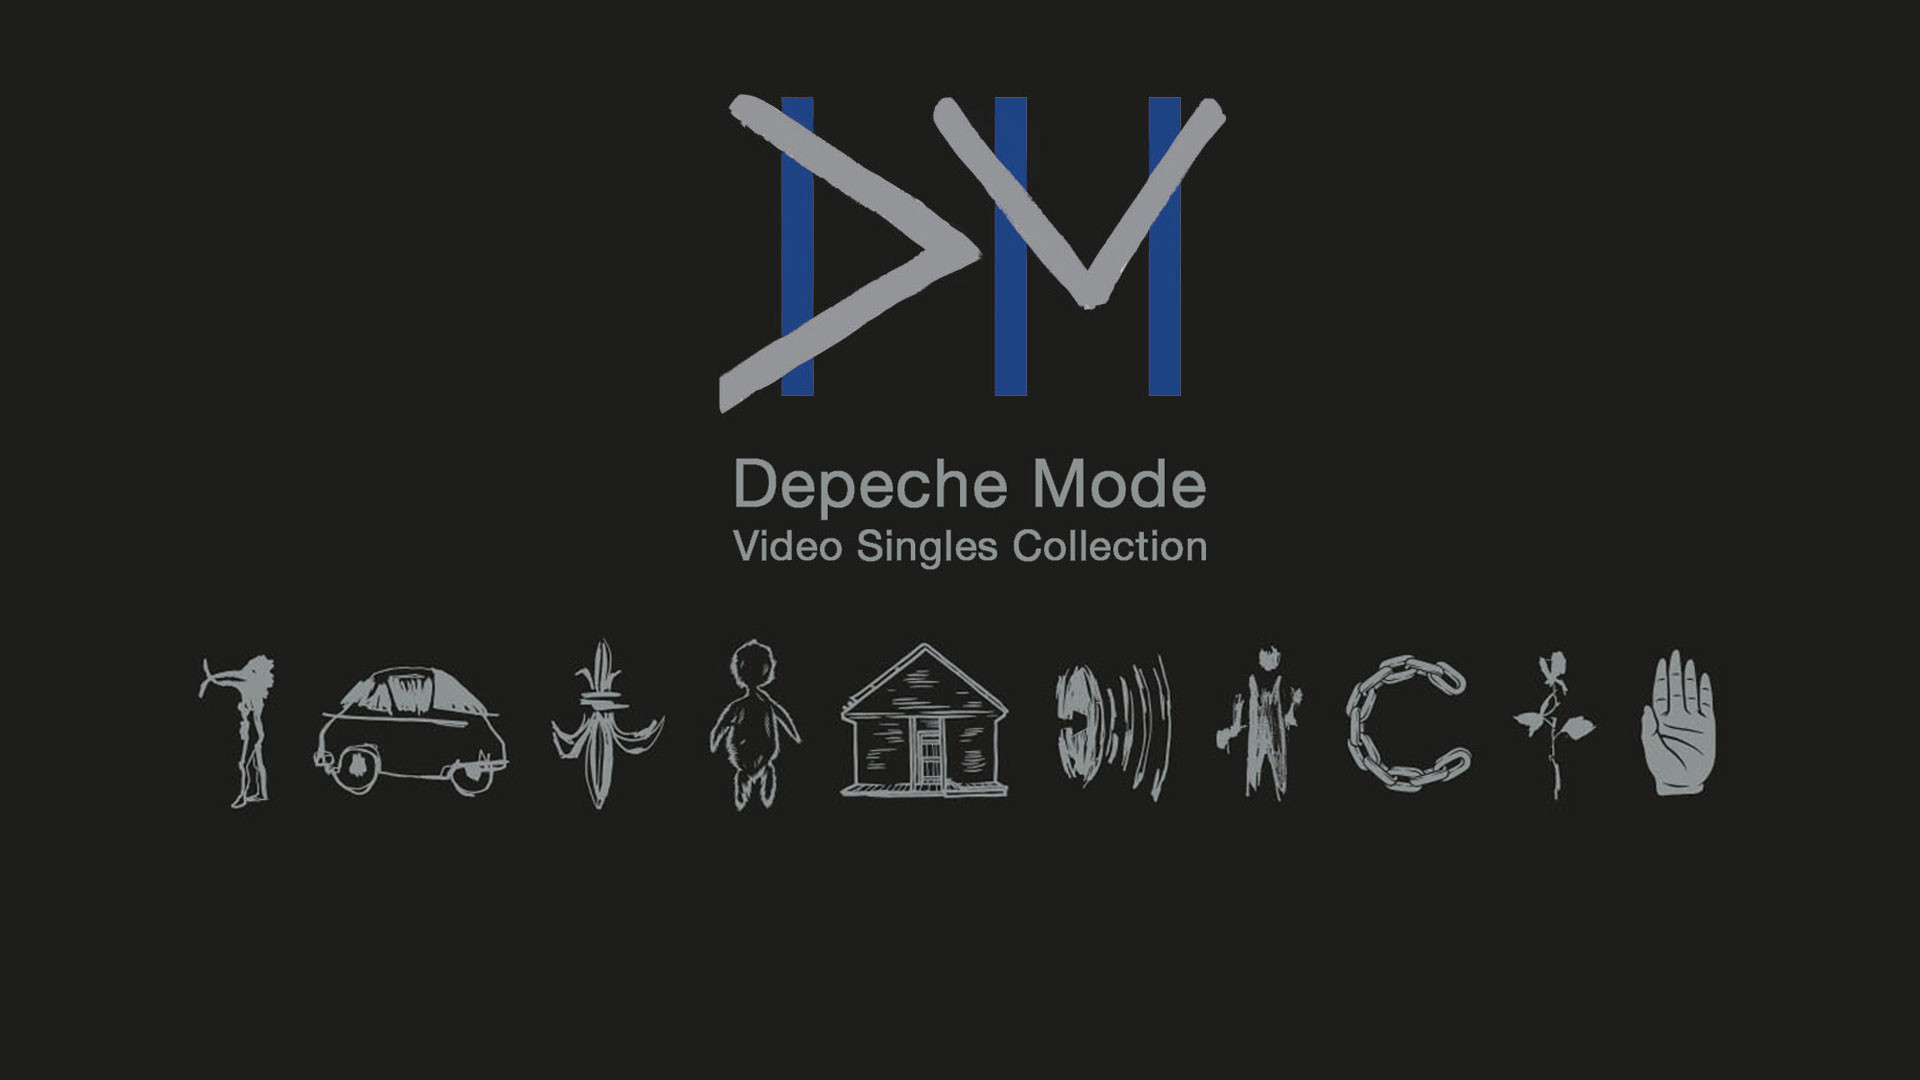 1920x1080 ... Depeche Mode : Video Singles Collection 11/11/2016 by IDAlizes